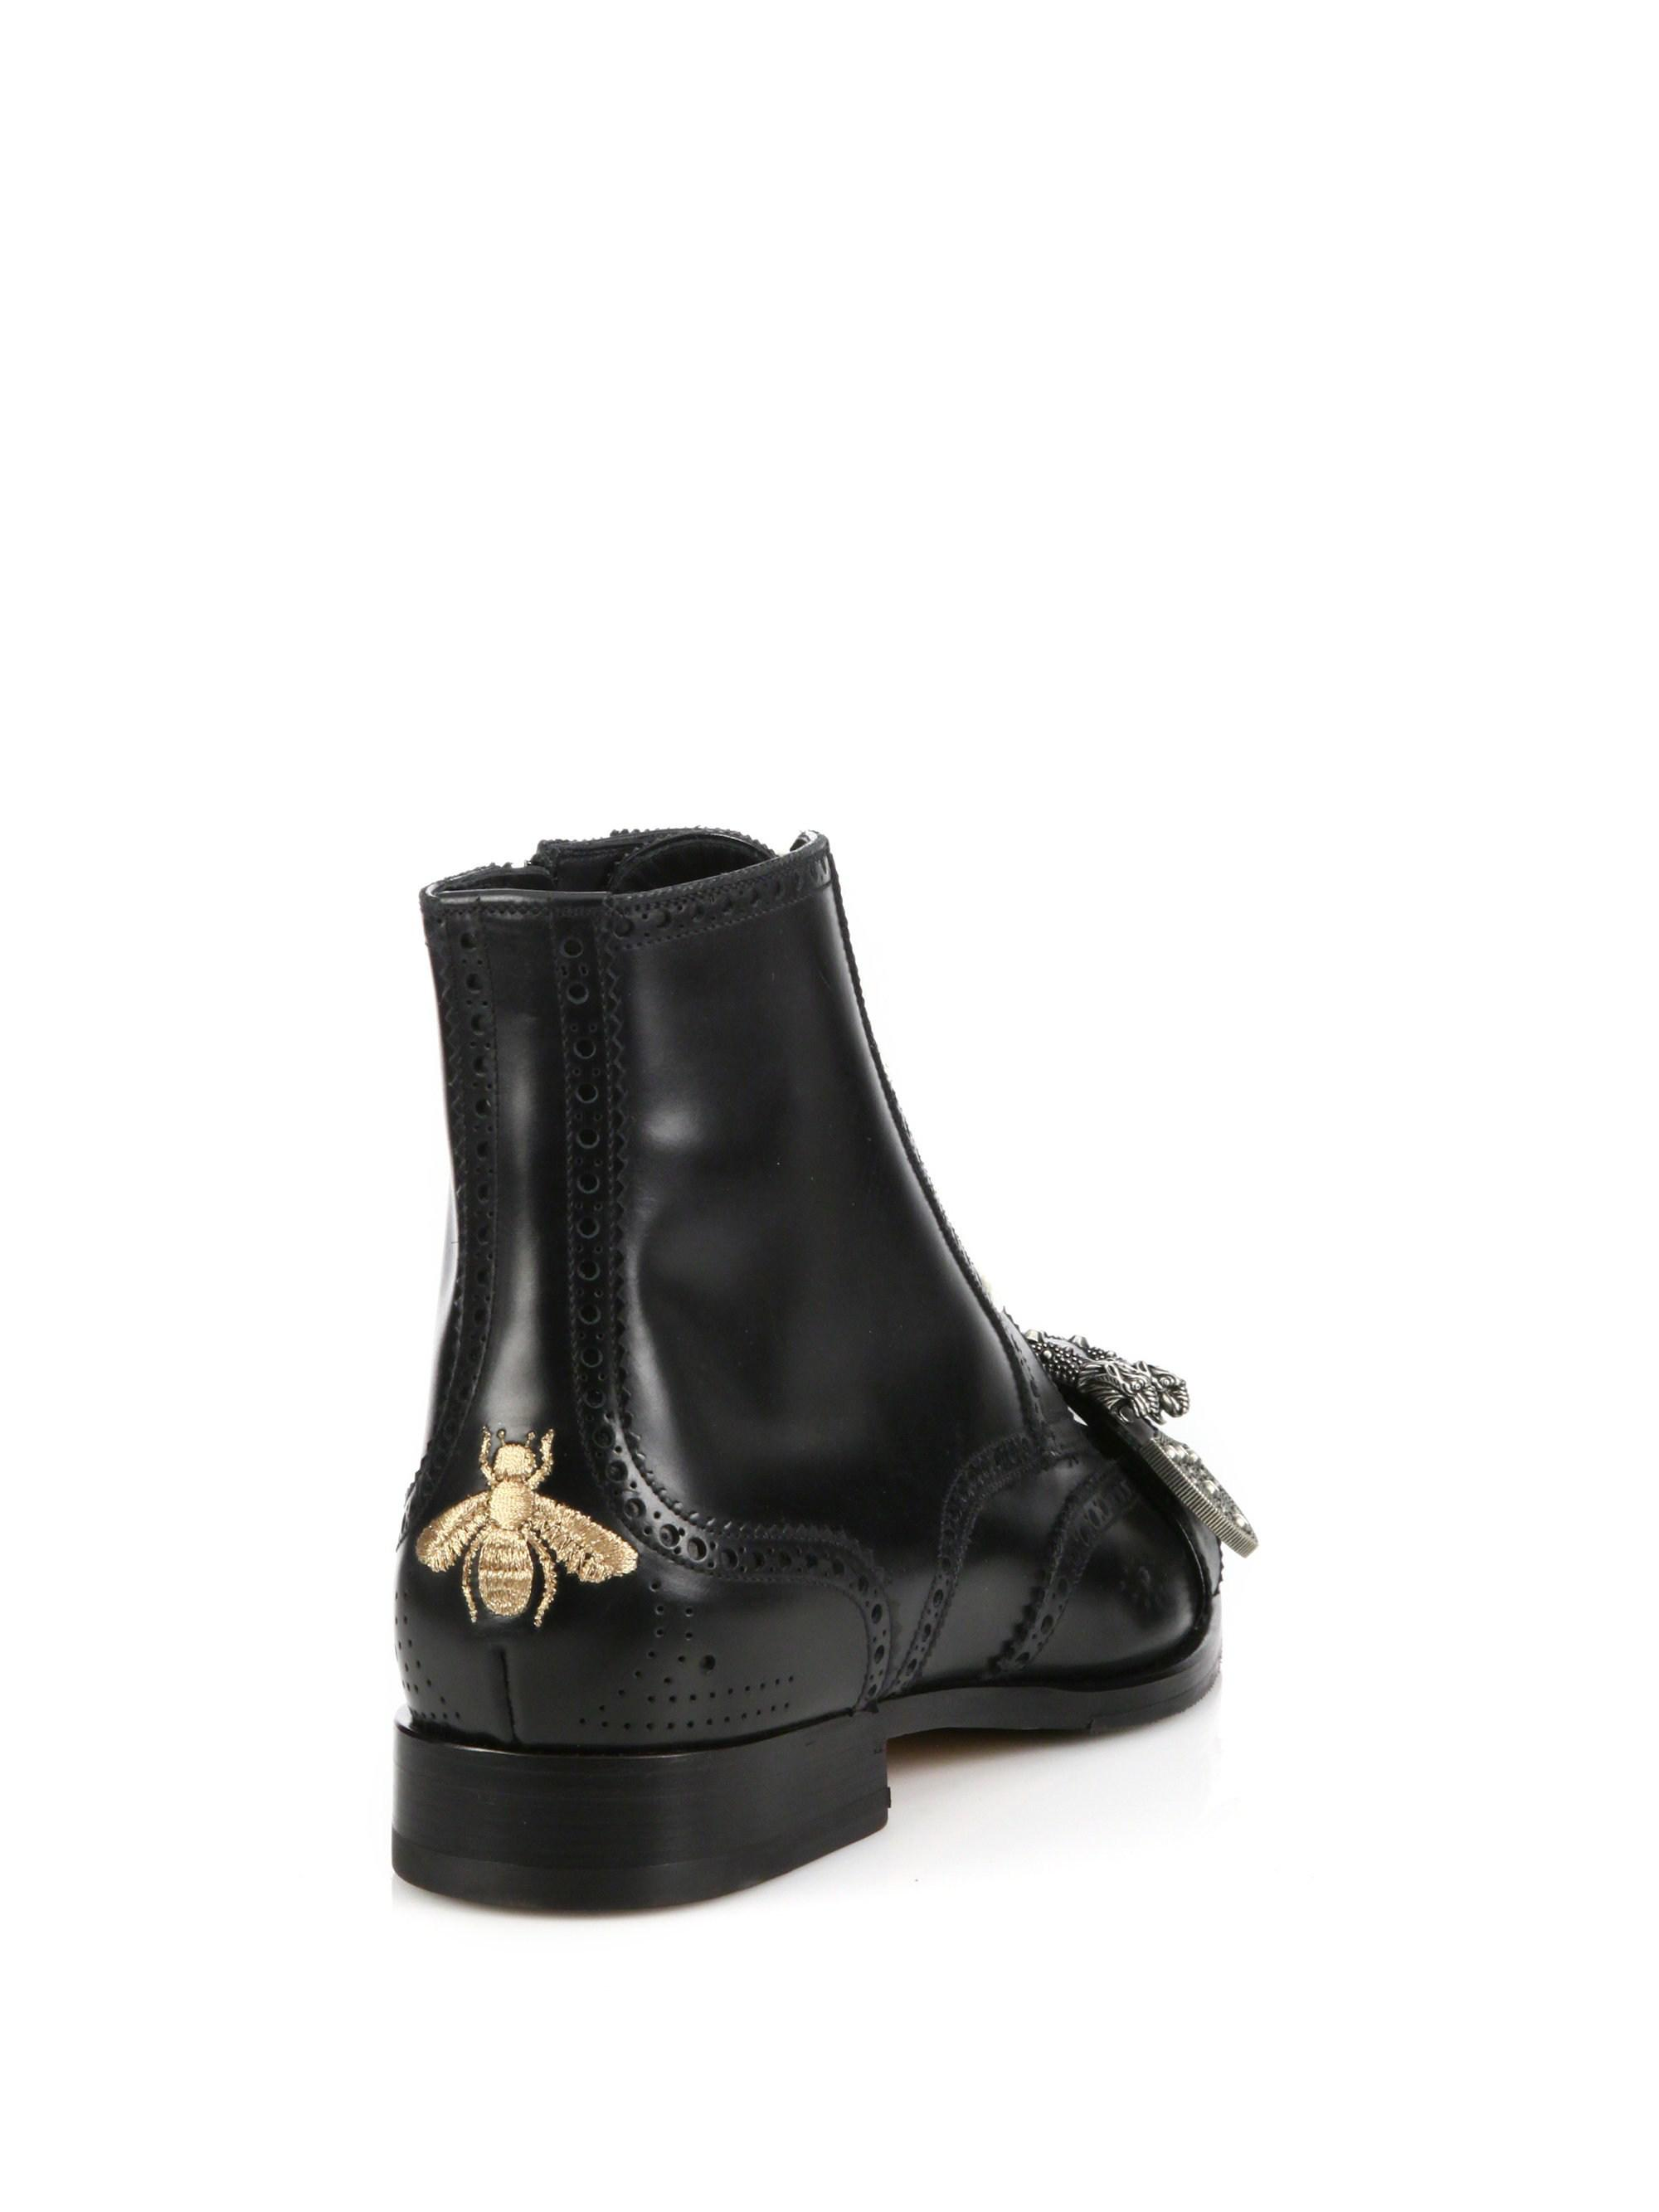 902780f08c1 Gucci - Black Iowa Queercore Leather Ankle Boots - Lyst. View fullscreen